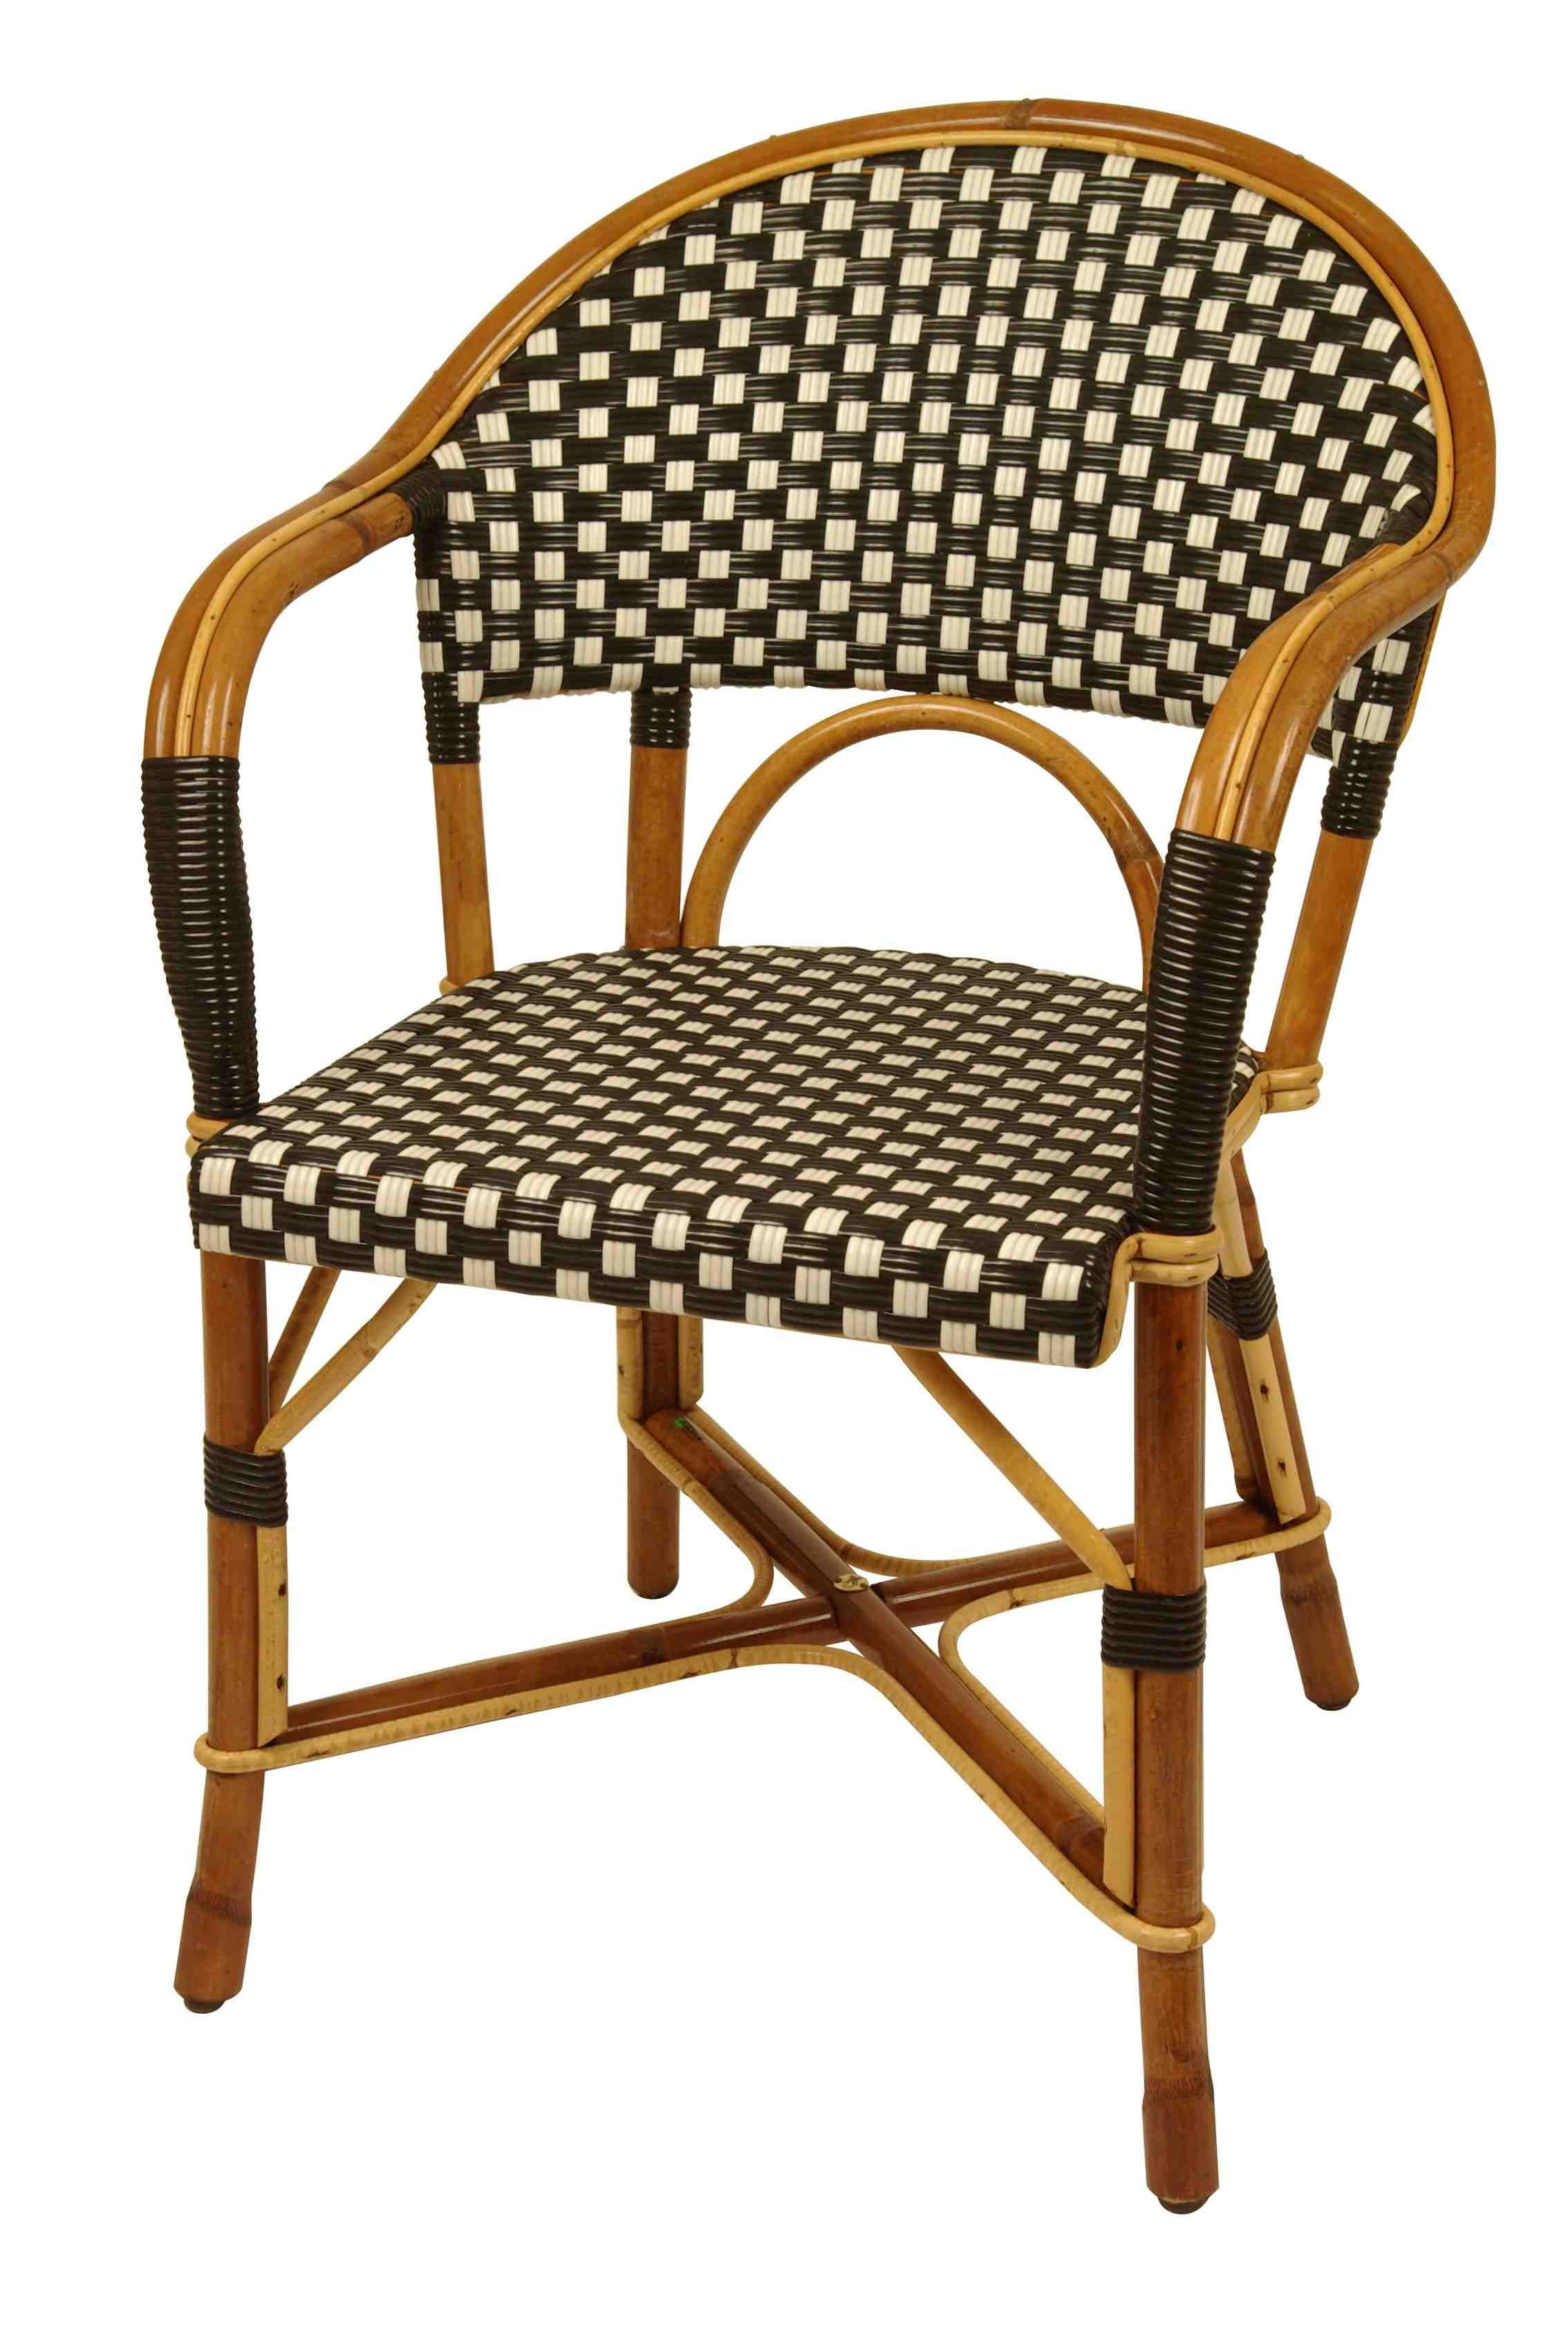 French bistro chairs metal - Fauteuil Matignon French Bistro Chair From Drucker Collection Tradition